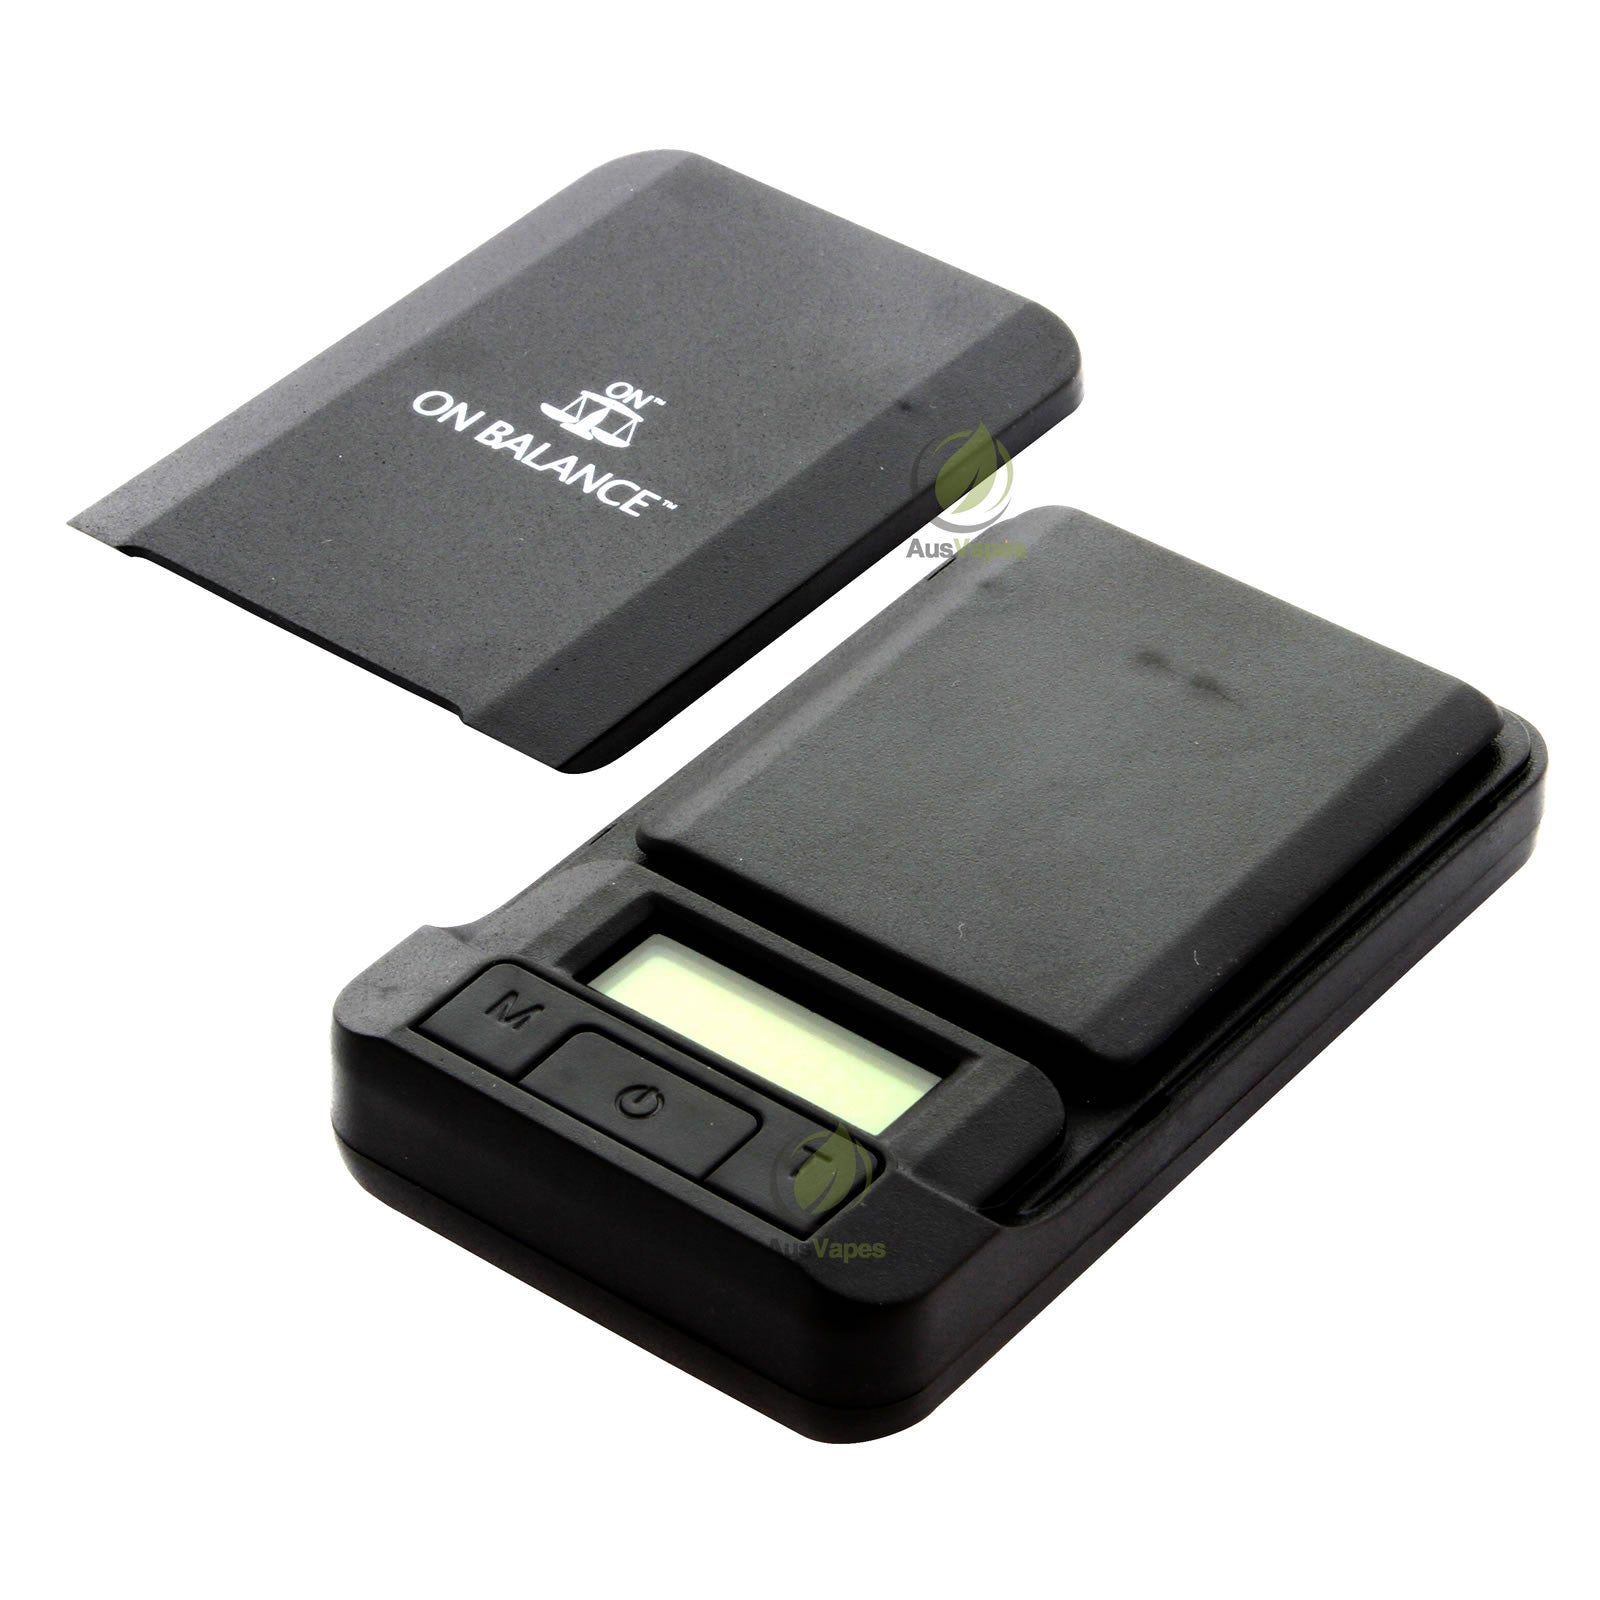 On Balance LS-100 Lite Digital Pocket Scale 100g x 0.01g